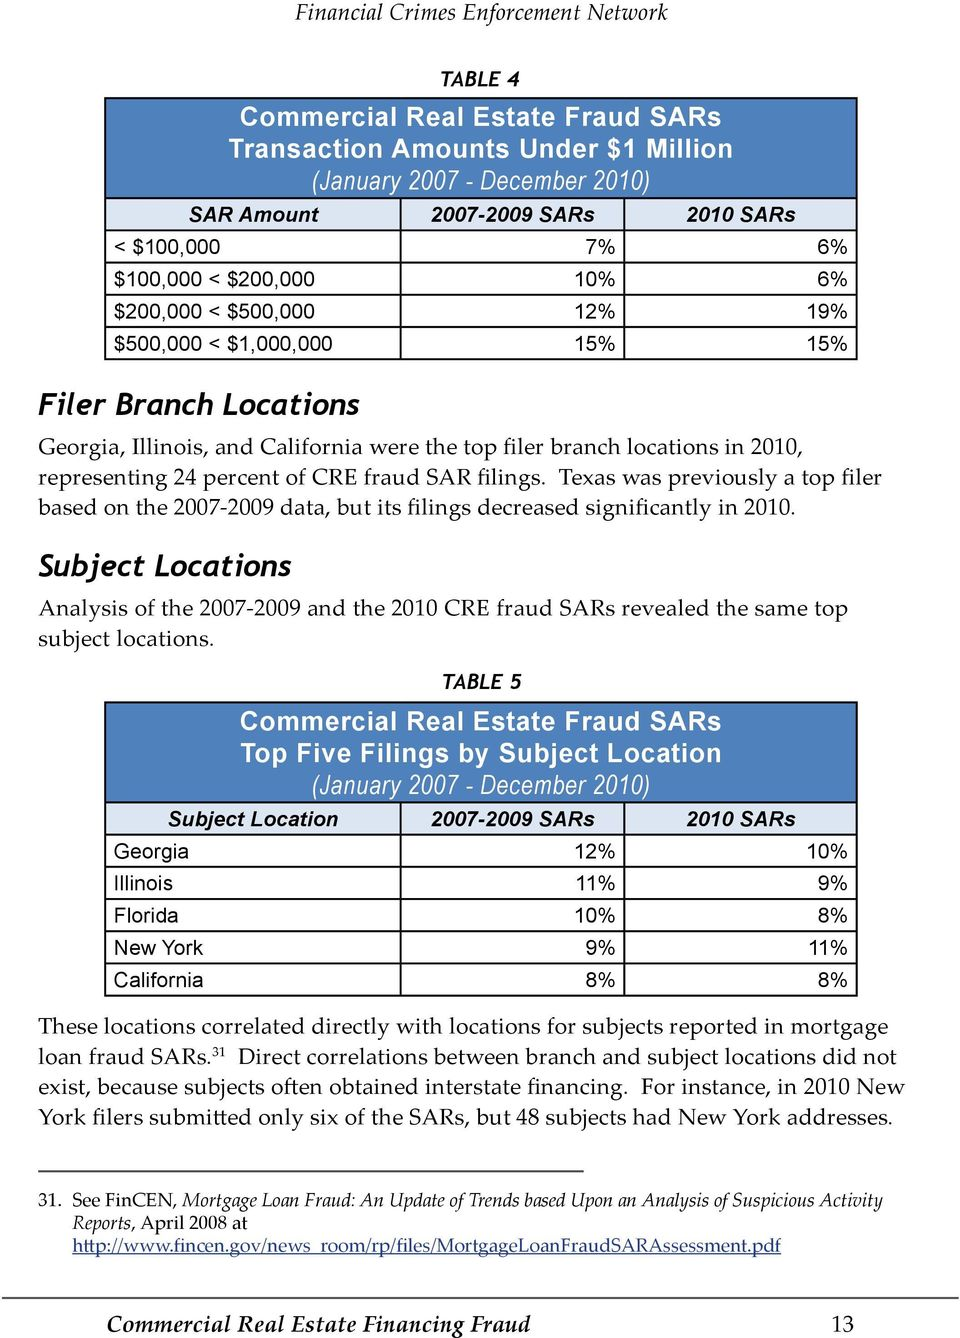 Texas was previously a top filer based on the 2007-2009 data, but its filings decreased significantly in 2010.